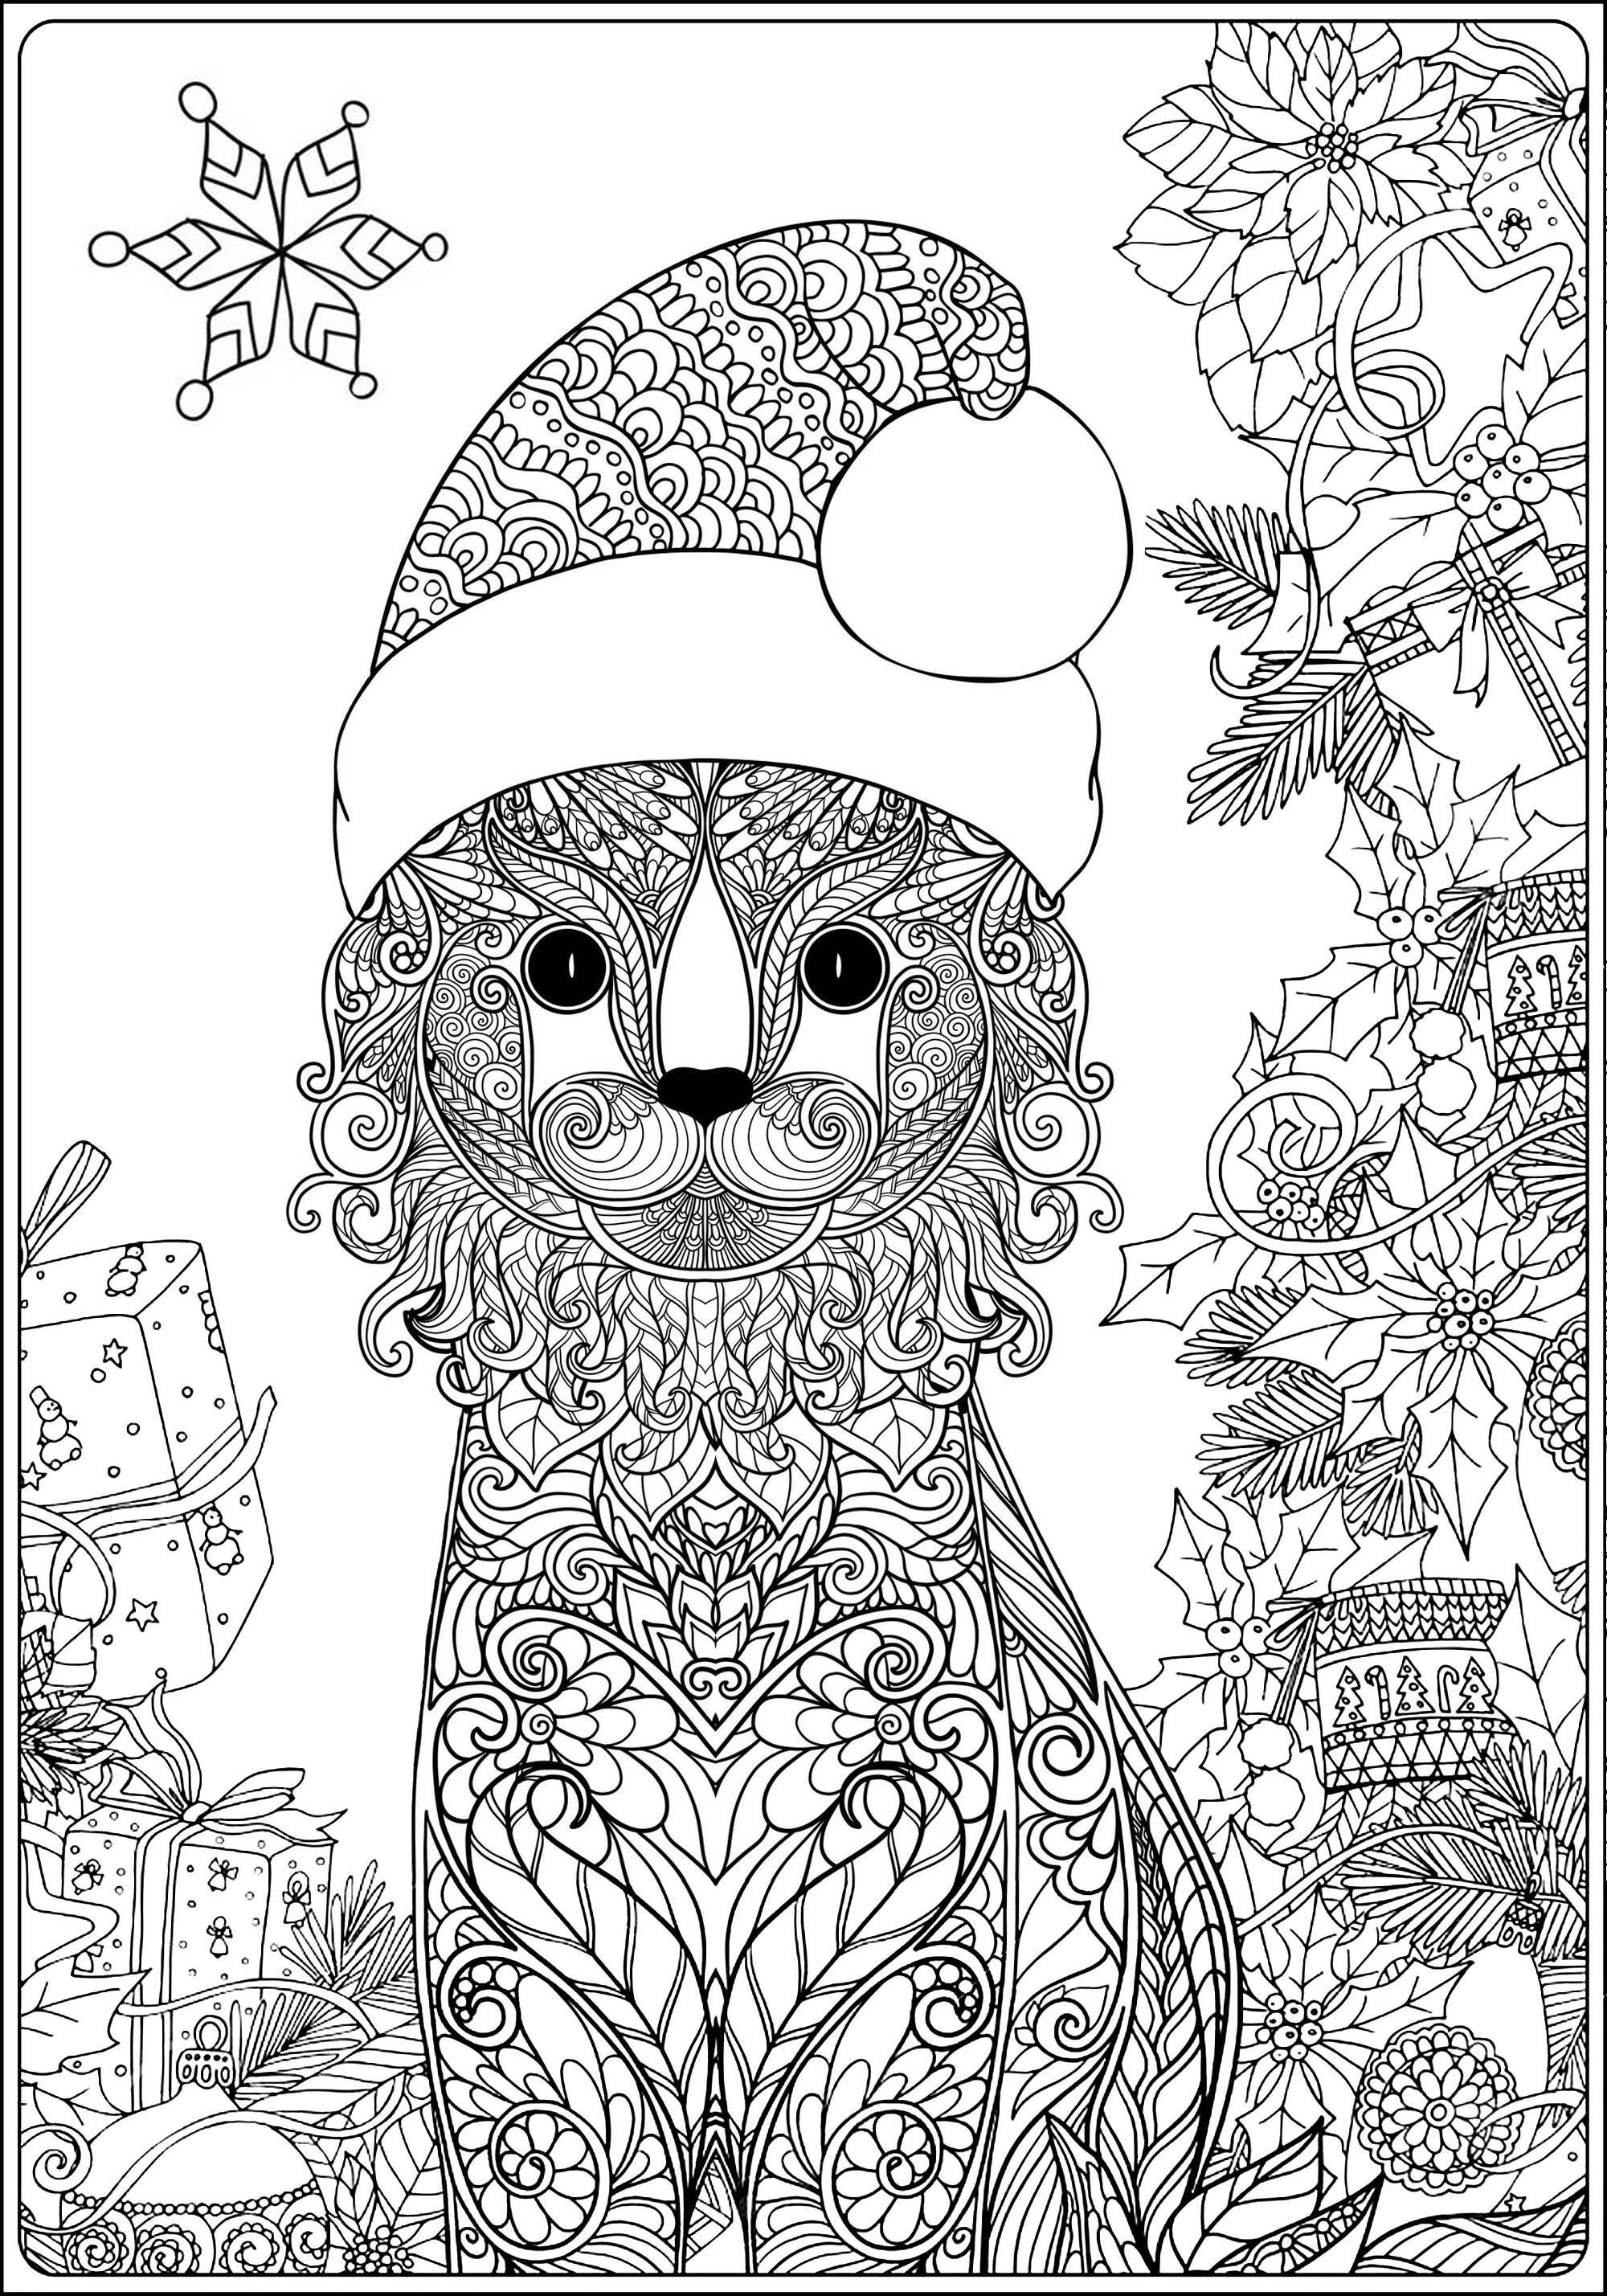 Joli chat et son chapeau de p re no l no l coloriages difficiles pour adultes - Chat a colorier adulte ...